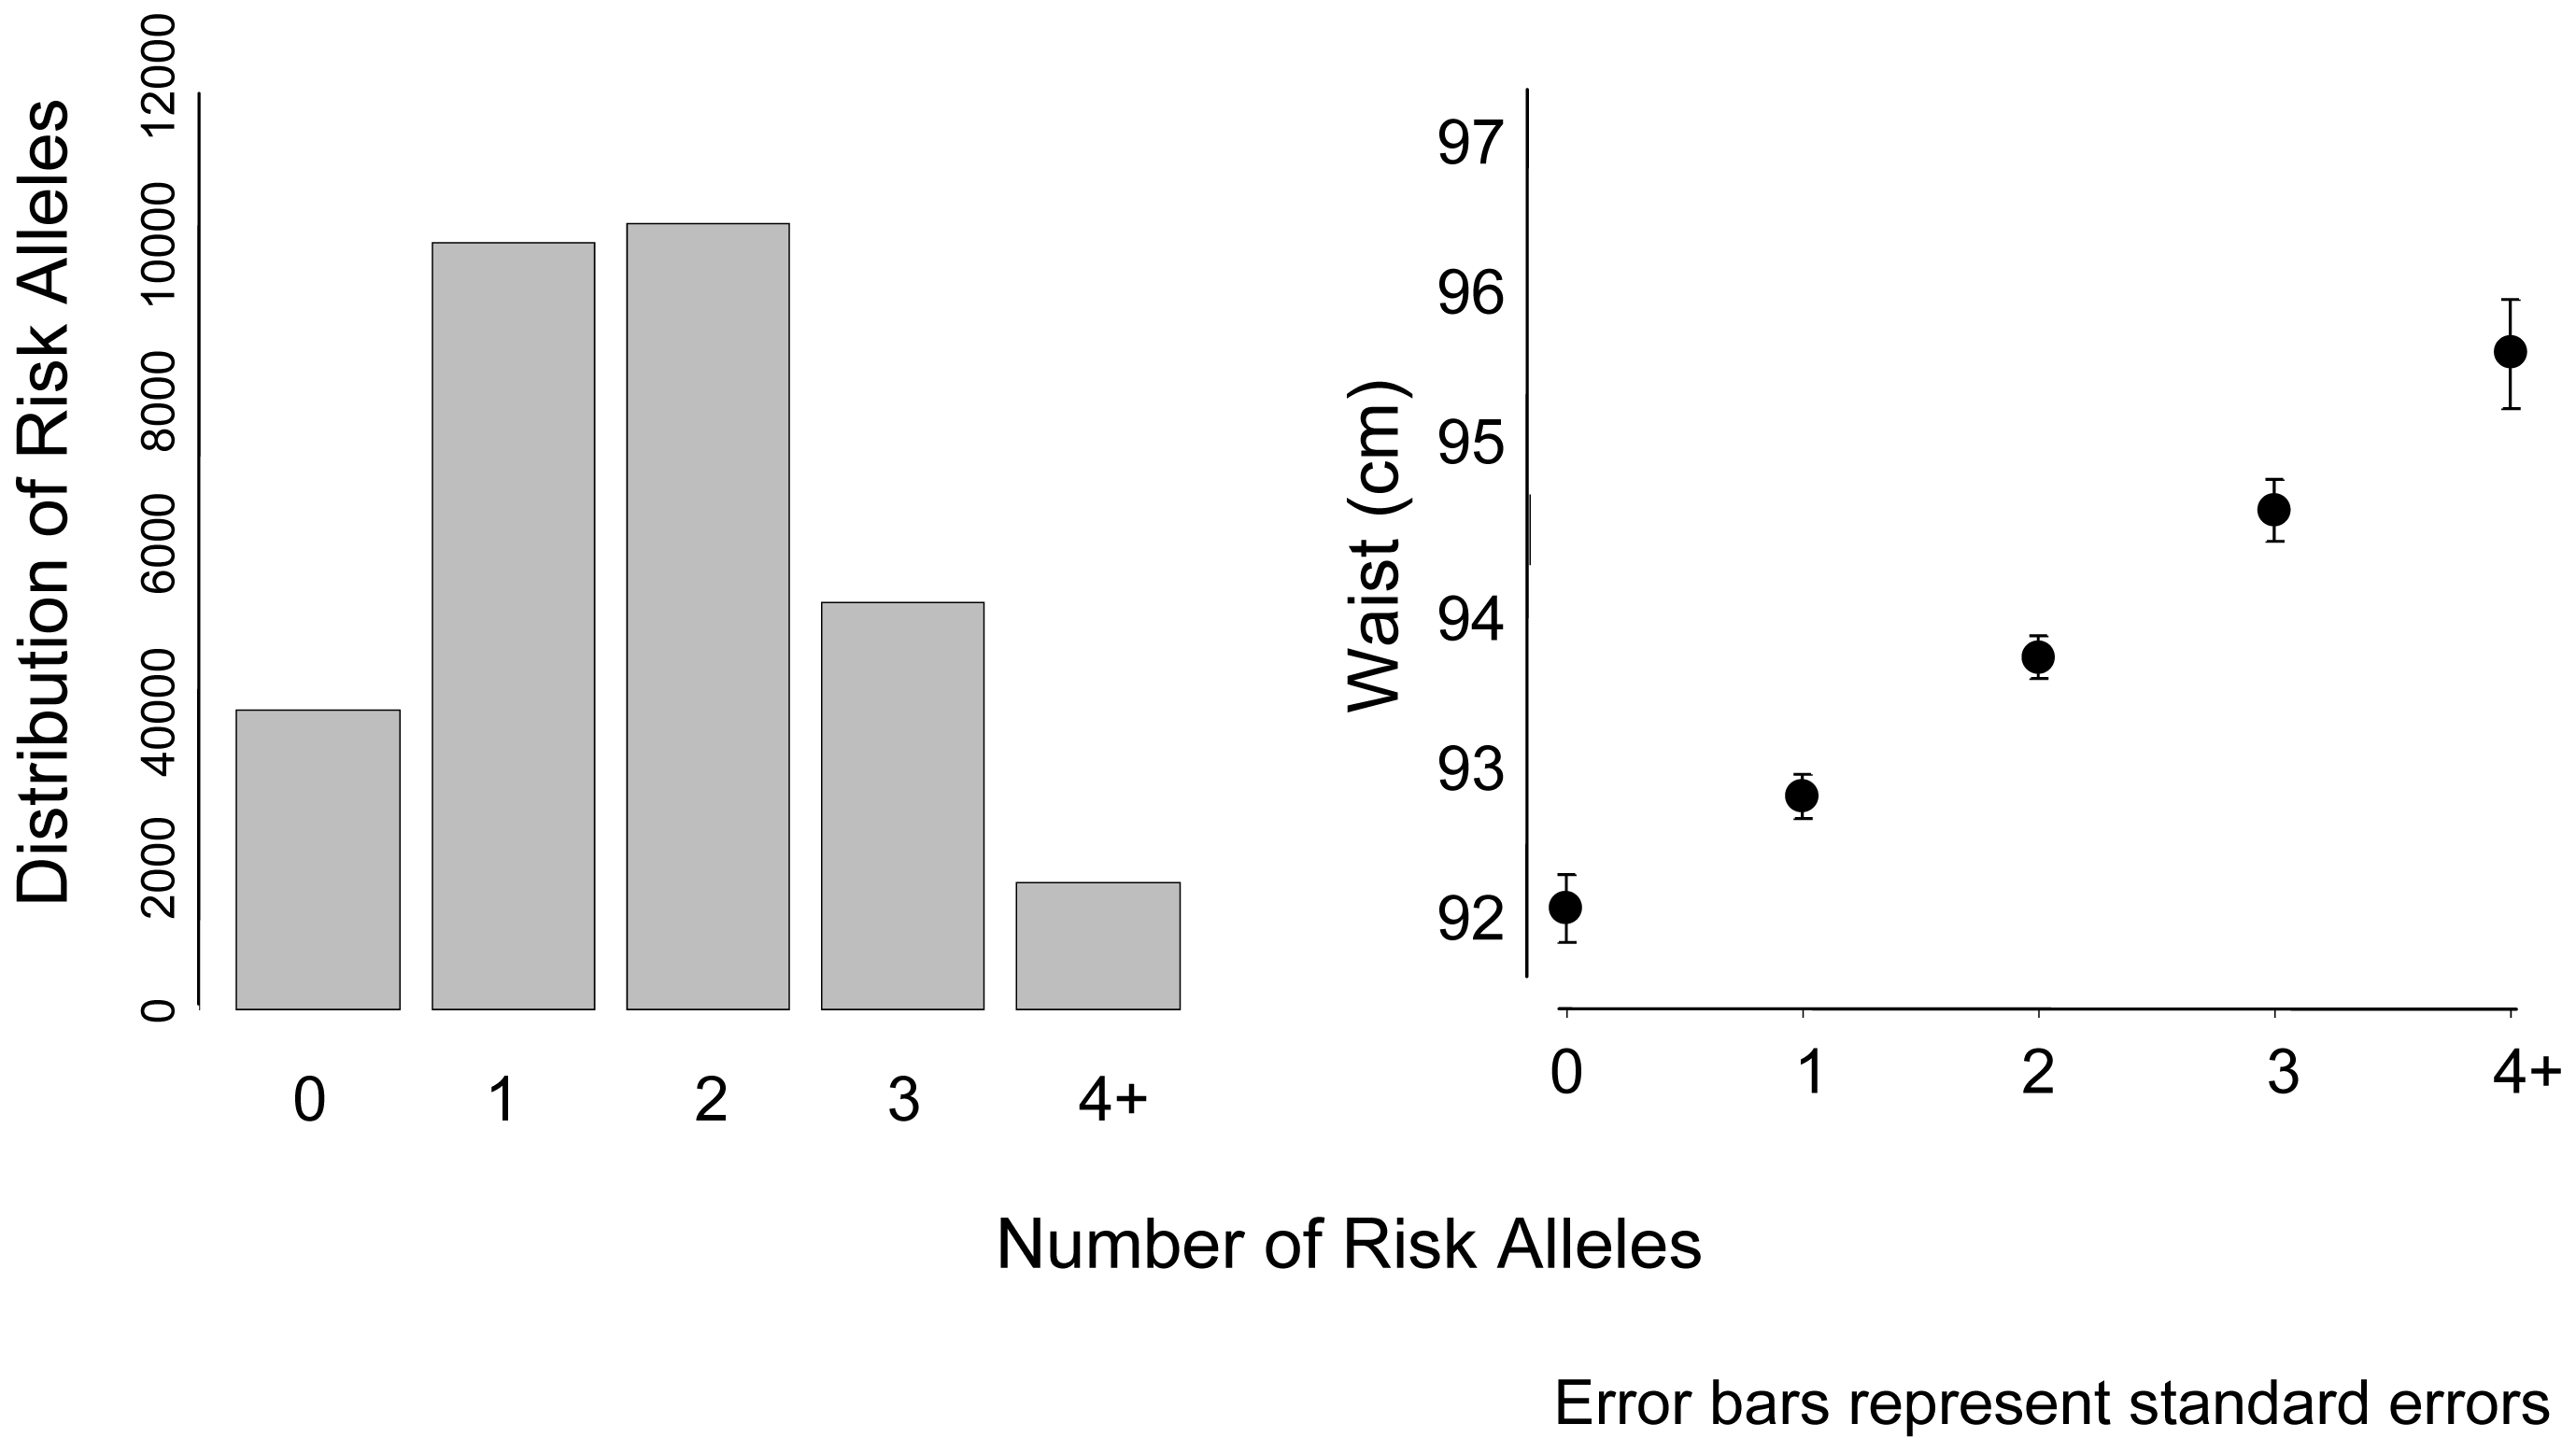 Mean waist circumference by number of risk alleles for <i>FTO</i>, <i>MC4R</i>, and <i>NRXN3</i>.